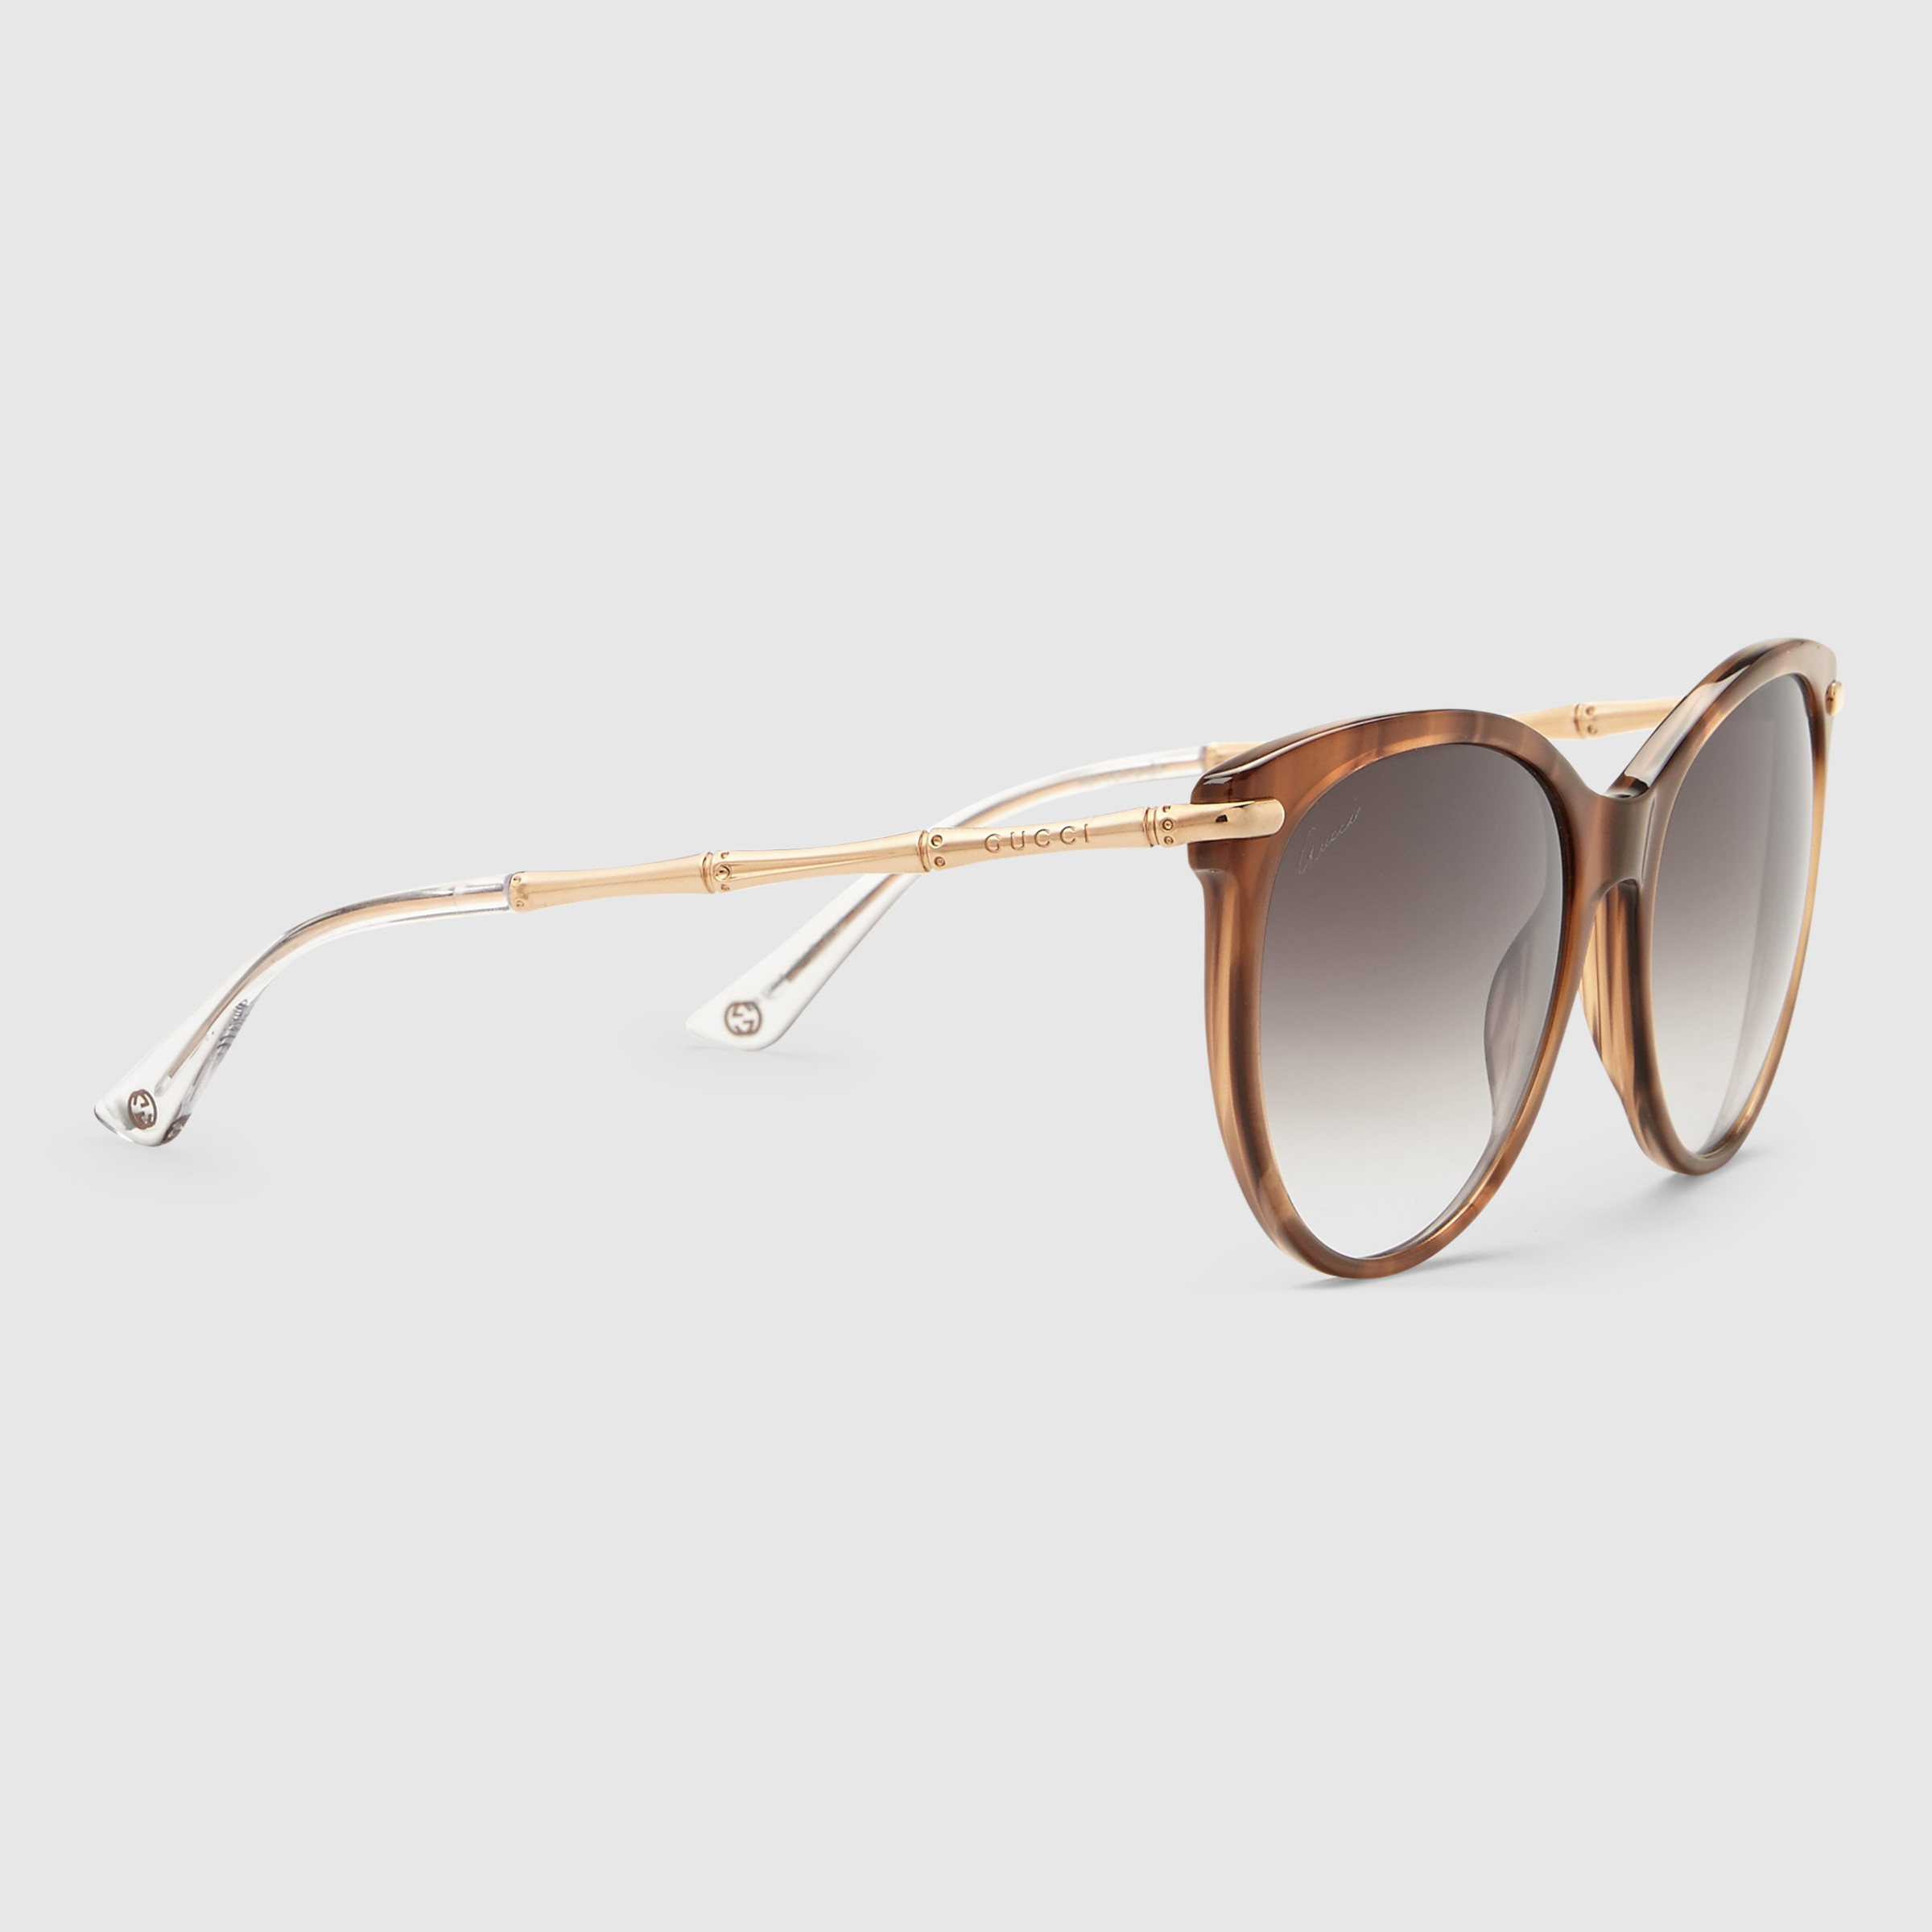 ad6f8b4a5f1 Buy Gucci Women s Red Cat Eye Sunglasses With Metal Bamboo Temples